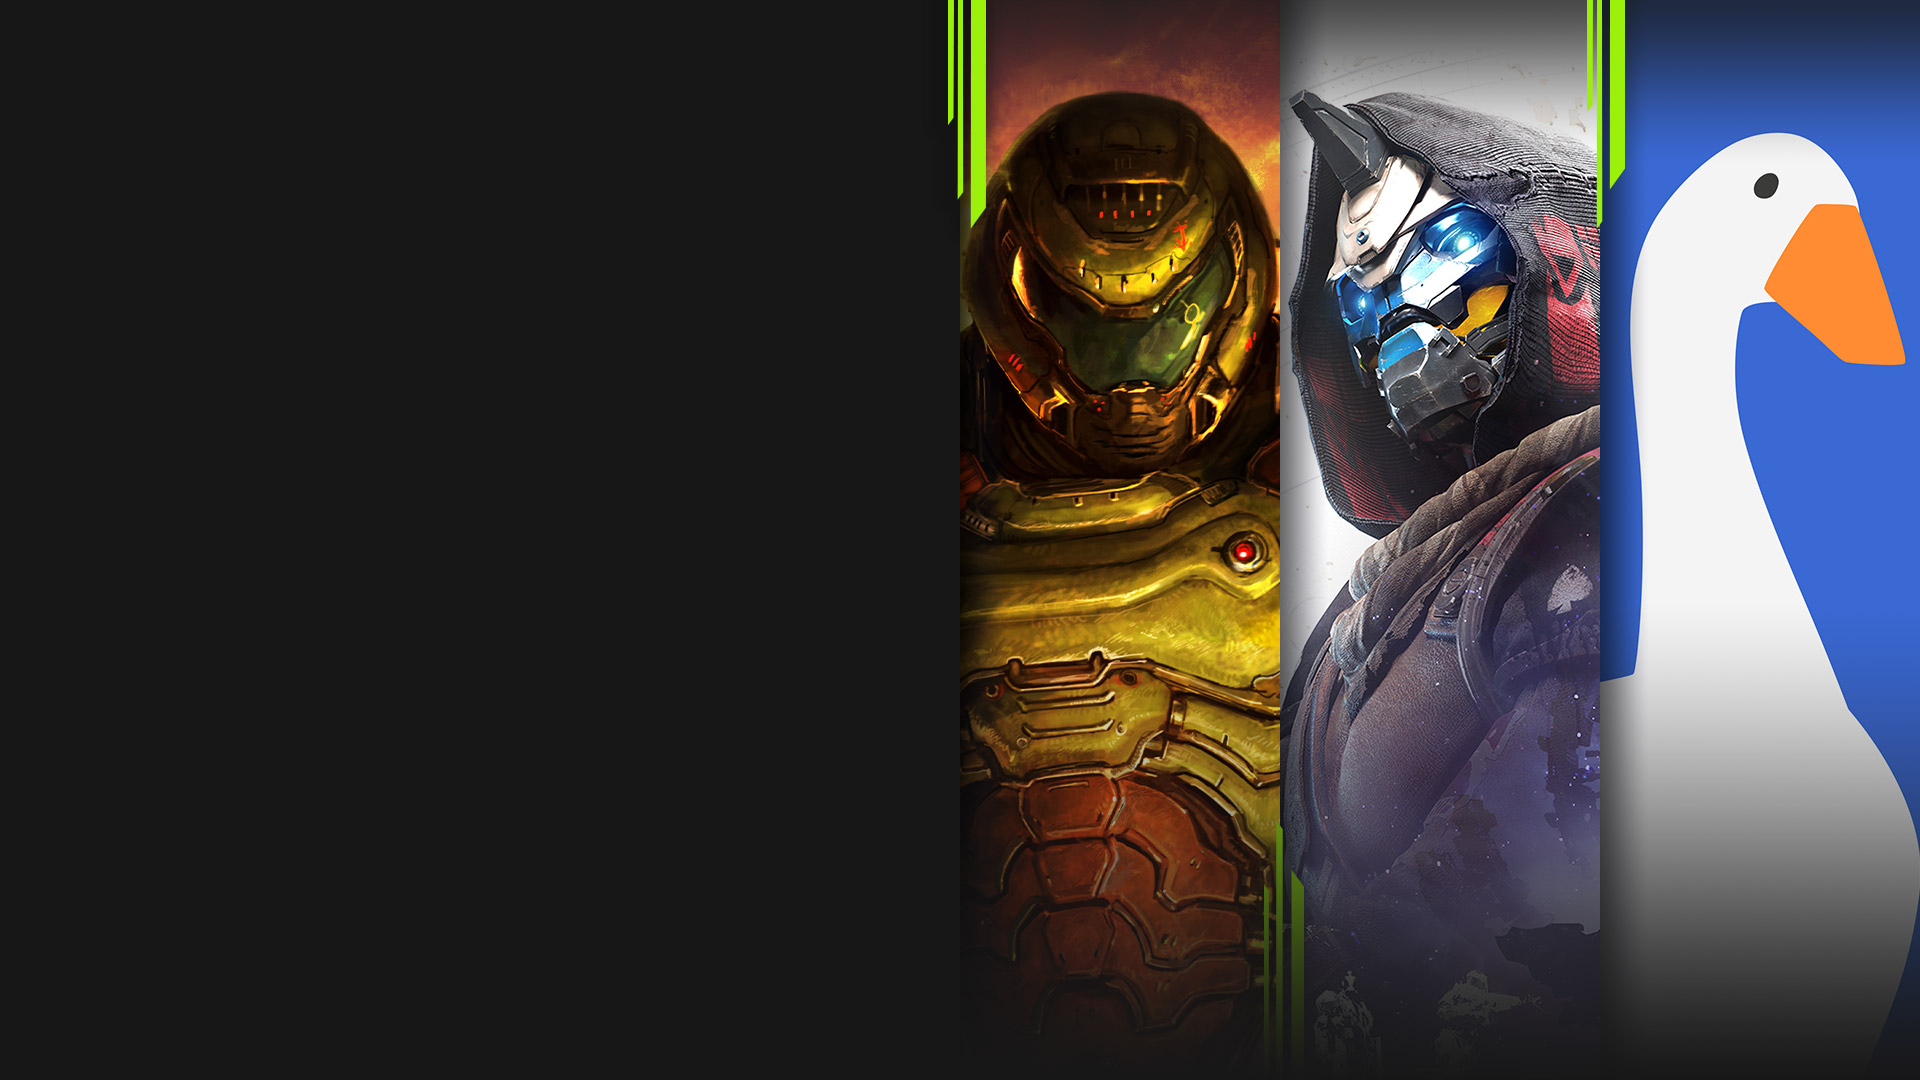 Game art from multiple games available with Xbox Game Pass including Doom Eternal, Destiny 2 and Untitled Goose Game.